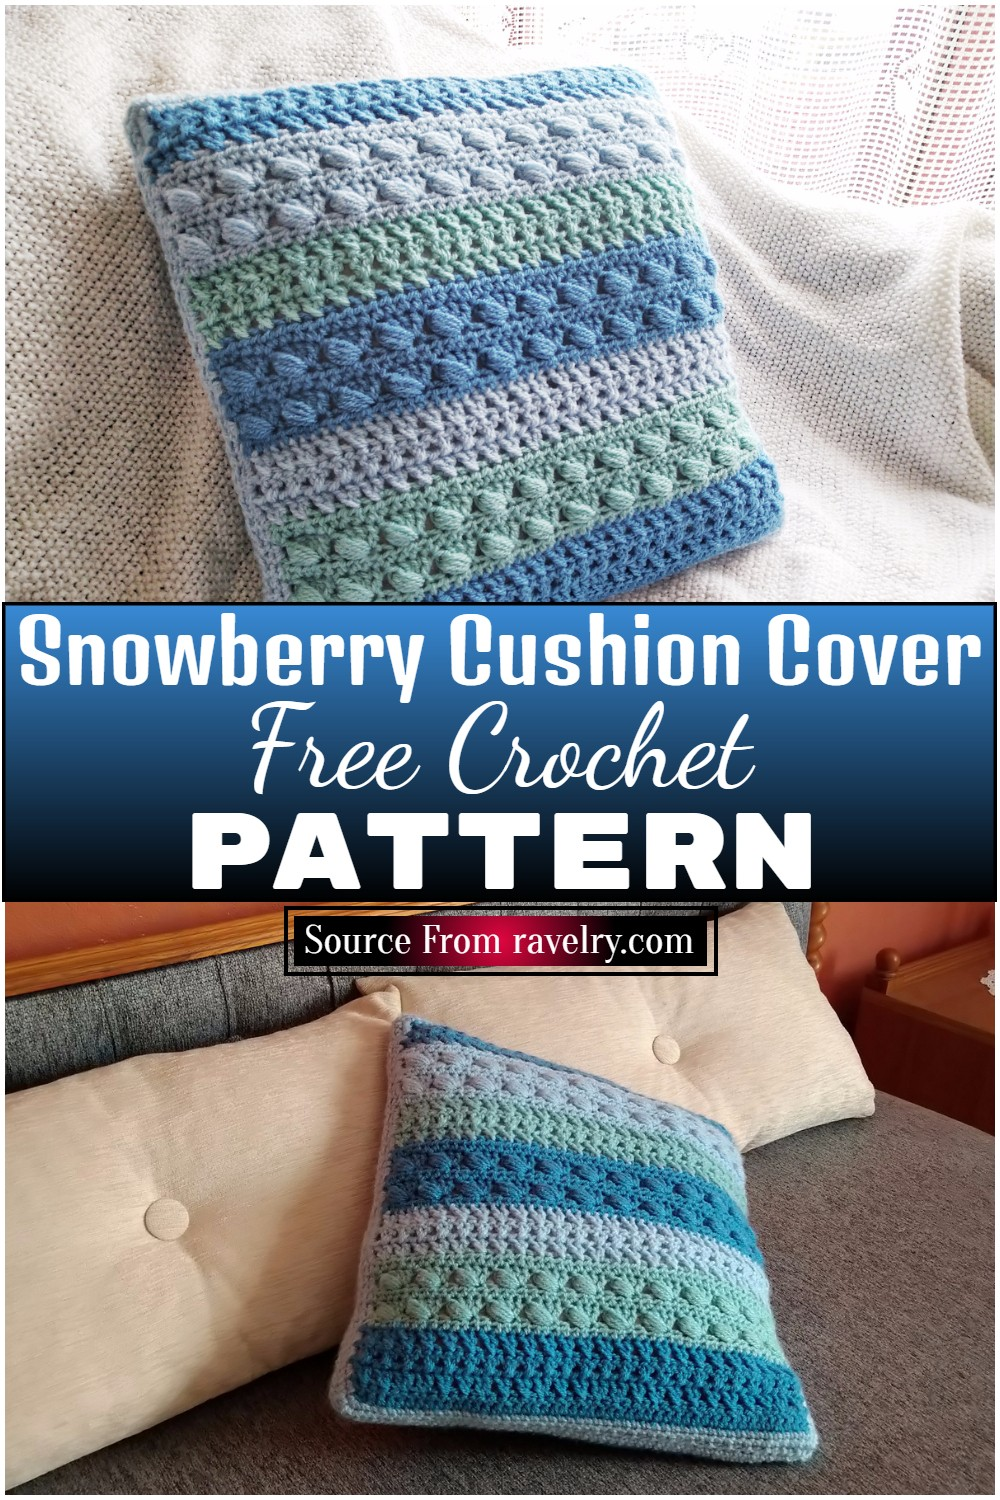 Free Crochet Snowberry Cushion Cover Pattern